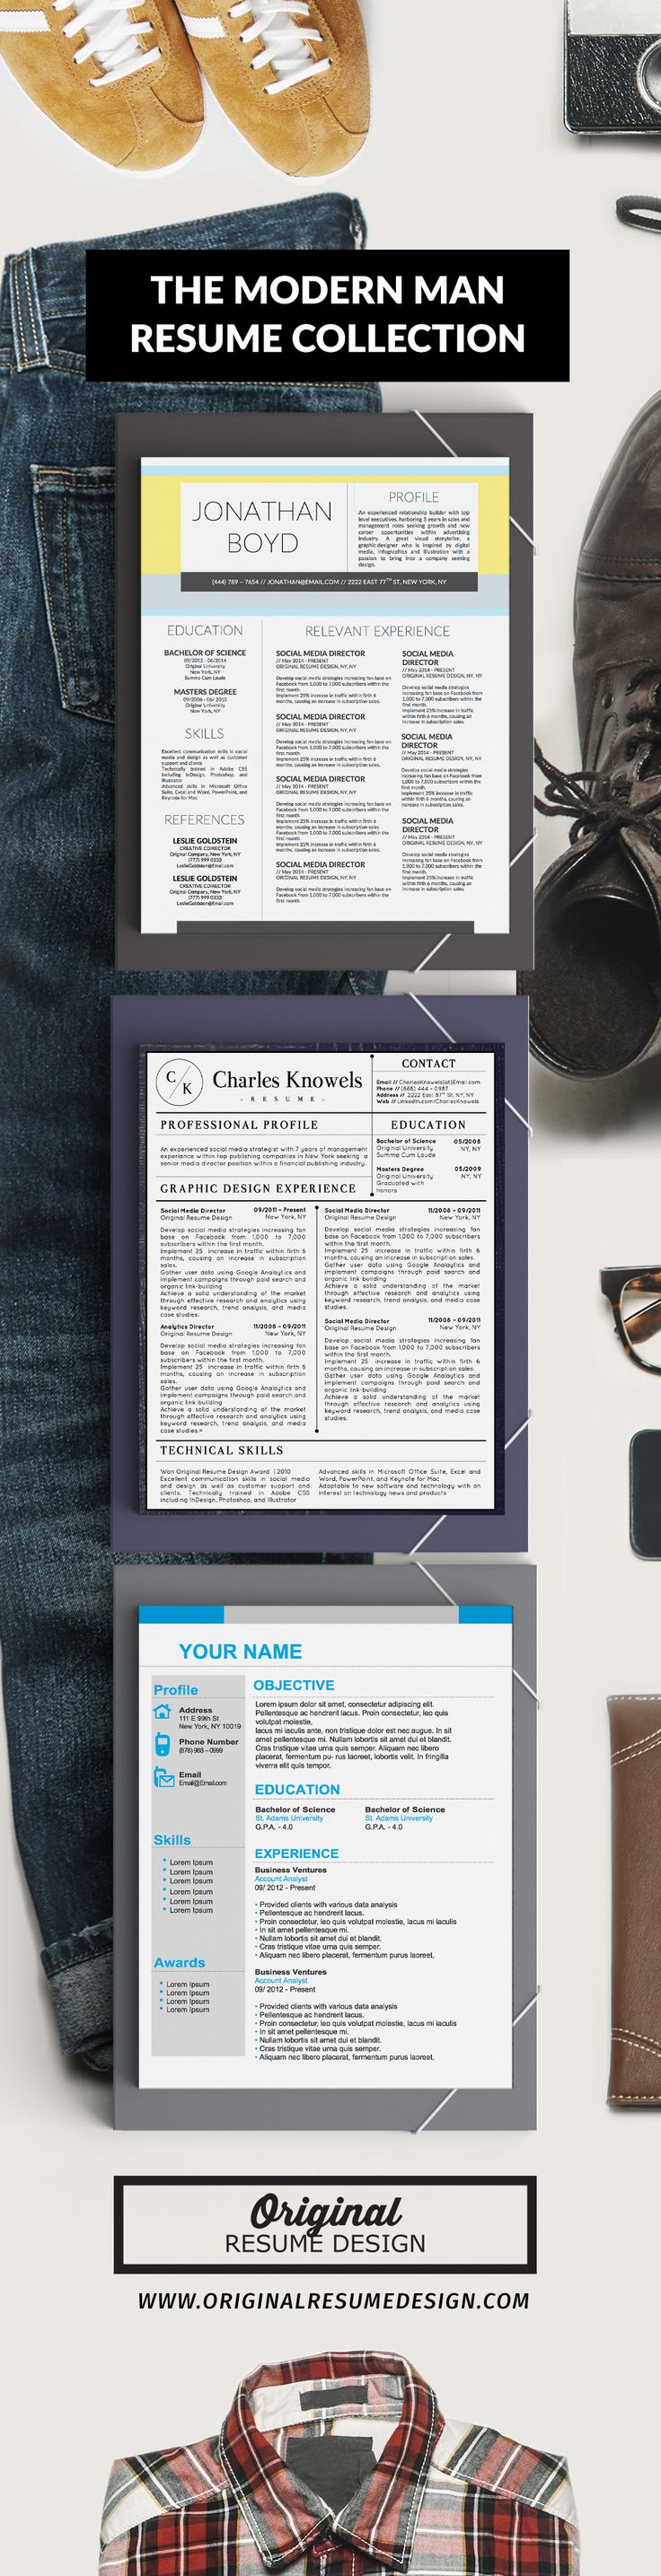 The modern man resume collection 3 Modern